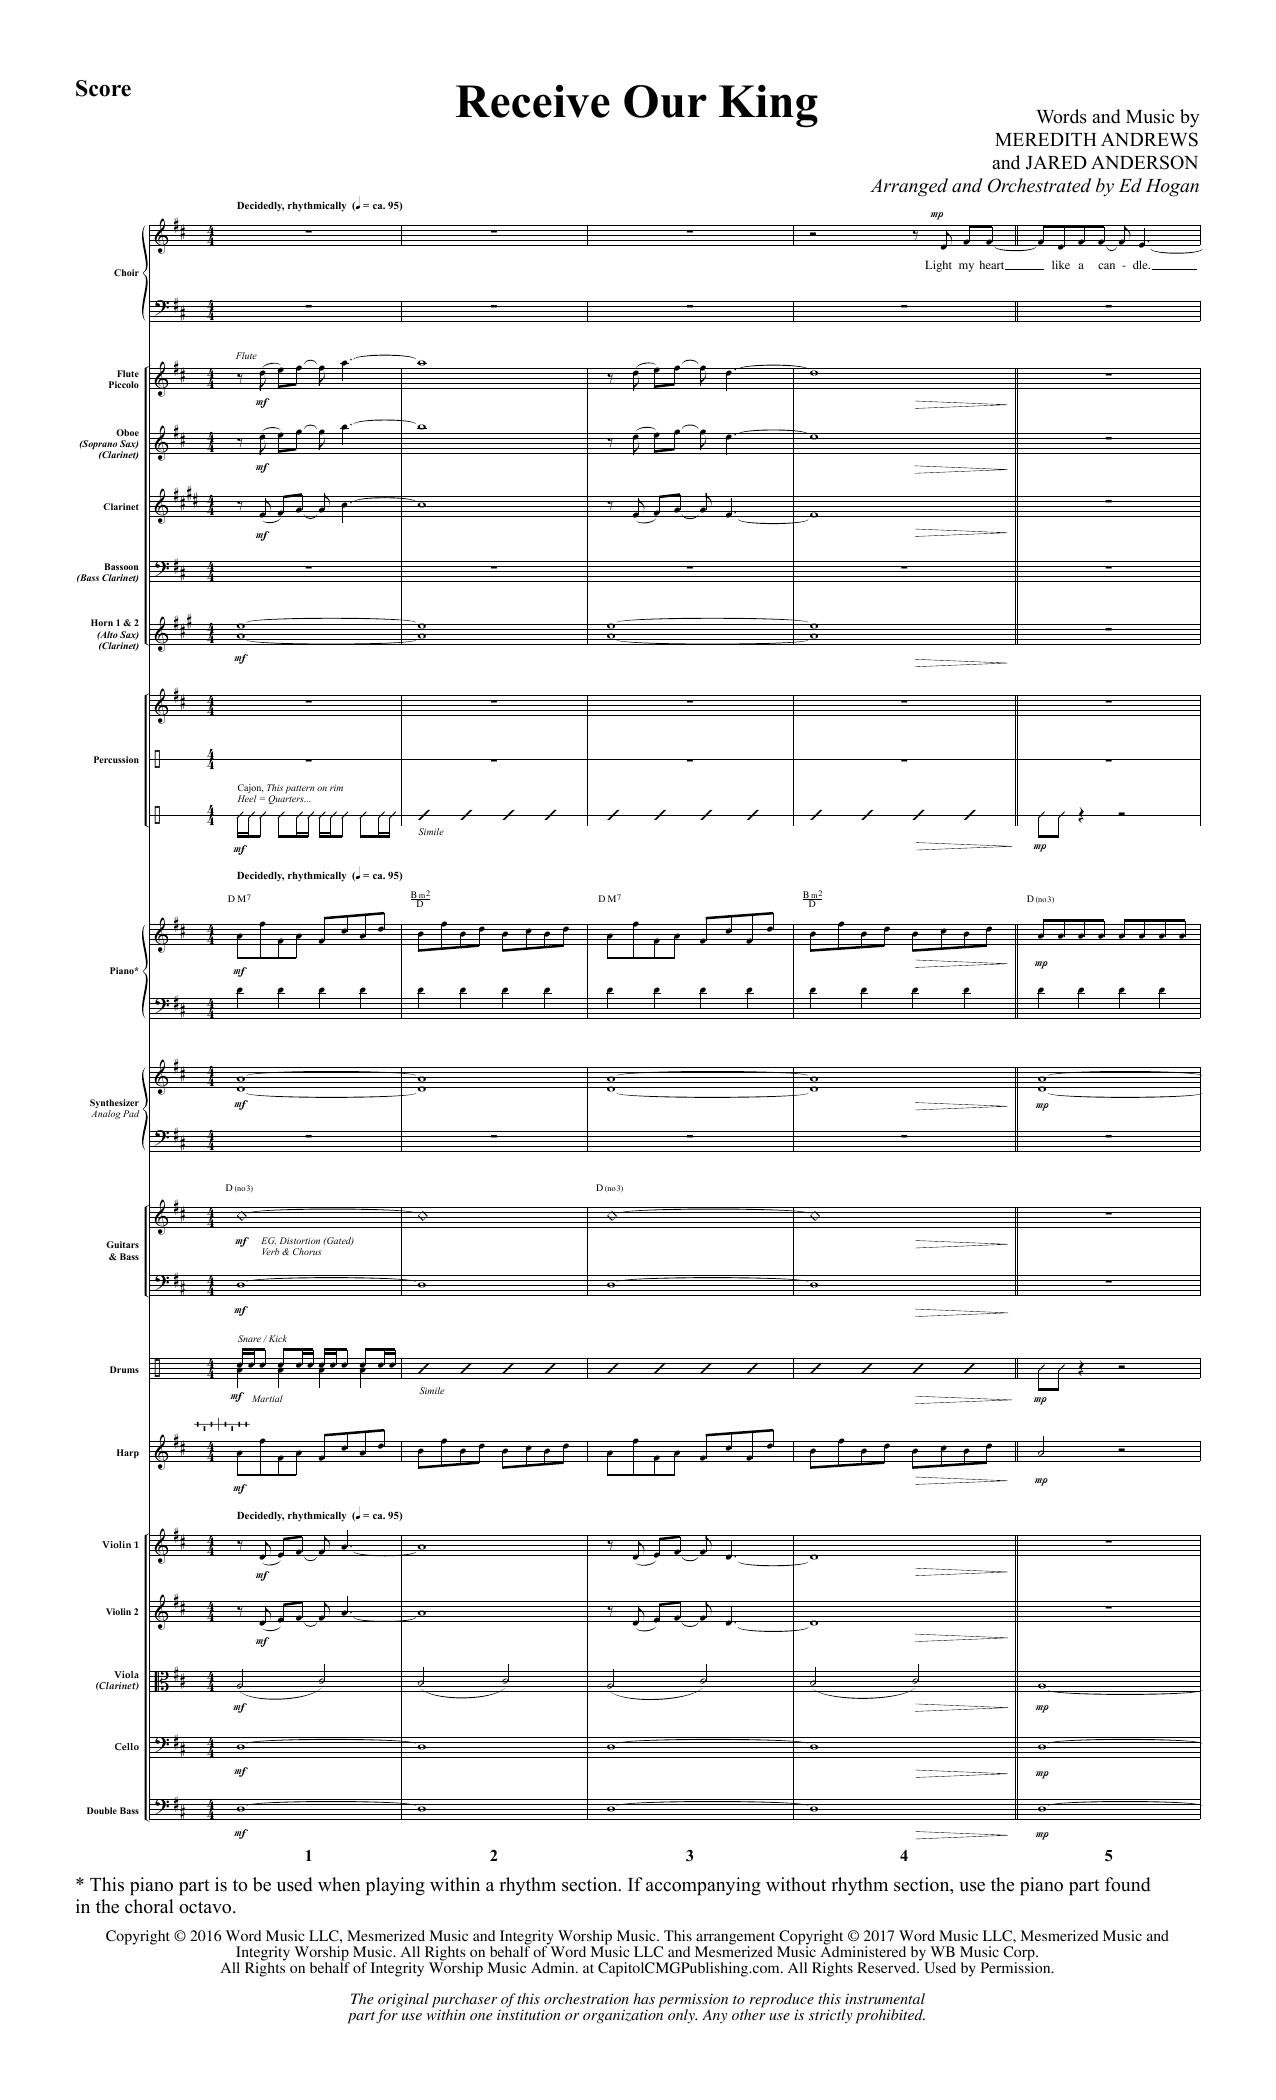 Ed Hogan Receive Our King - Full Score sheet music notes and chords. Download Printable PDF.